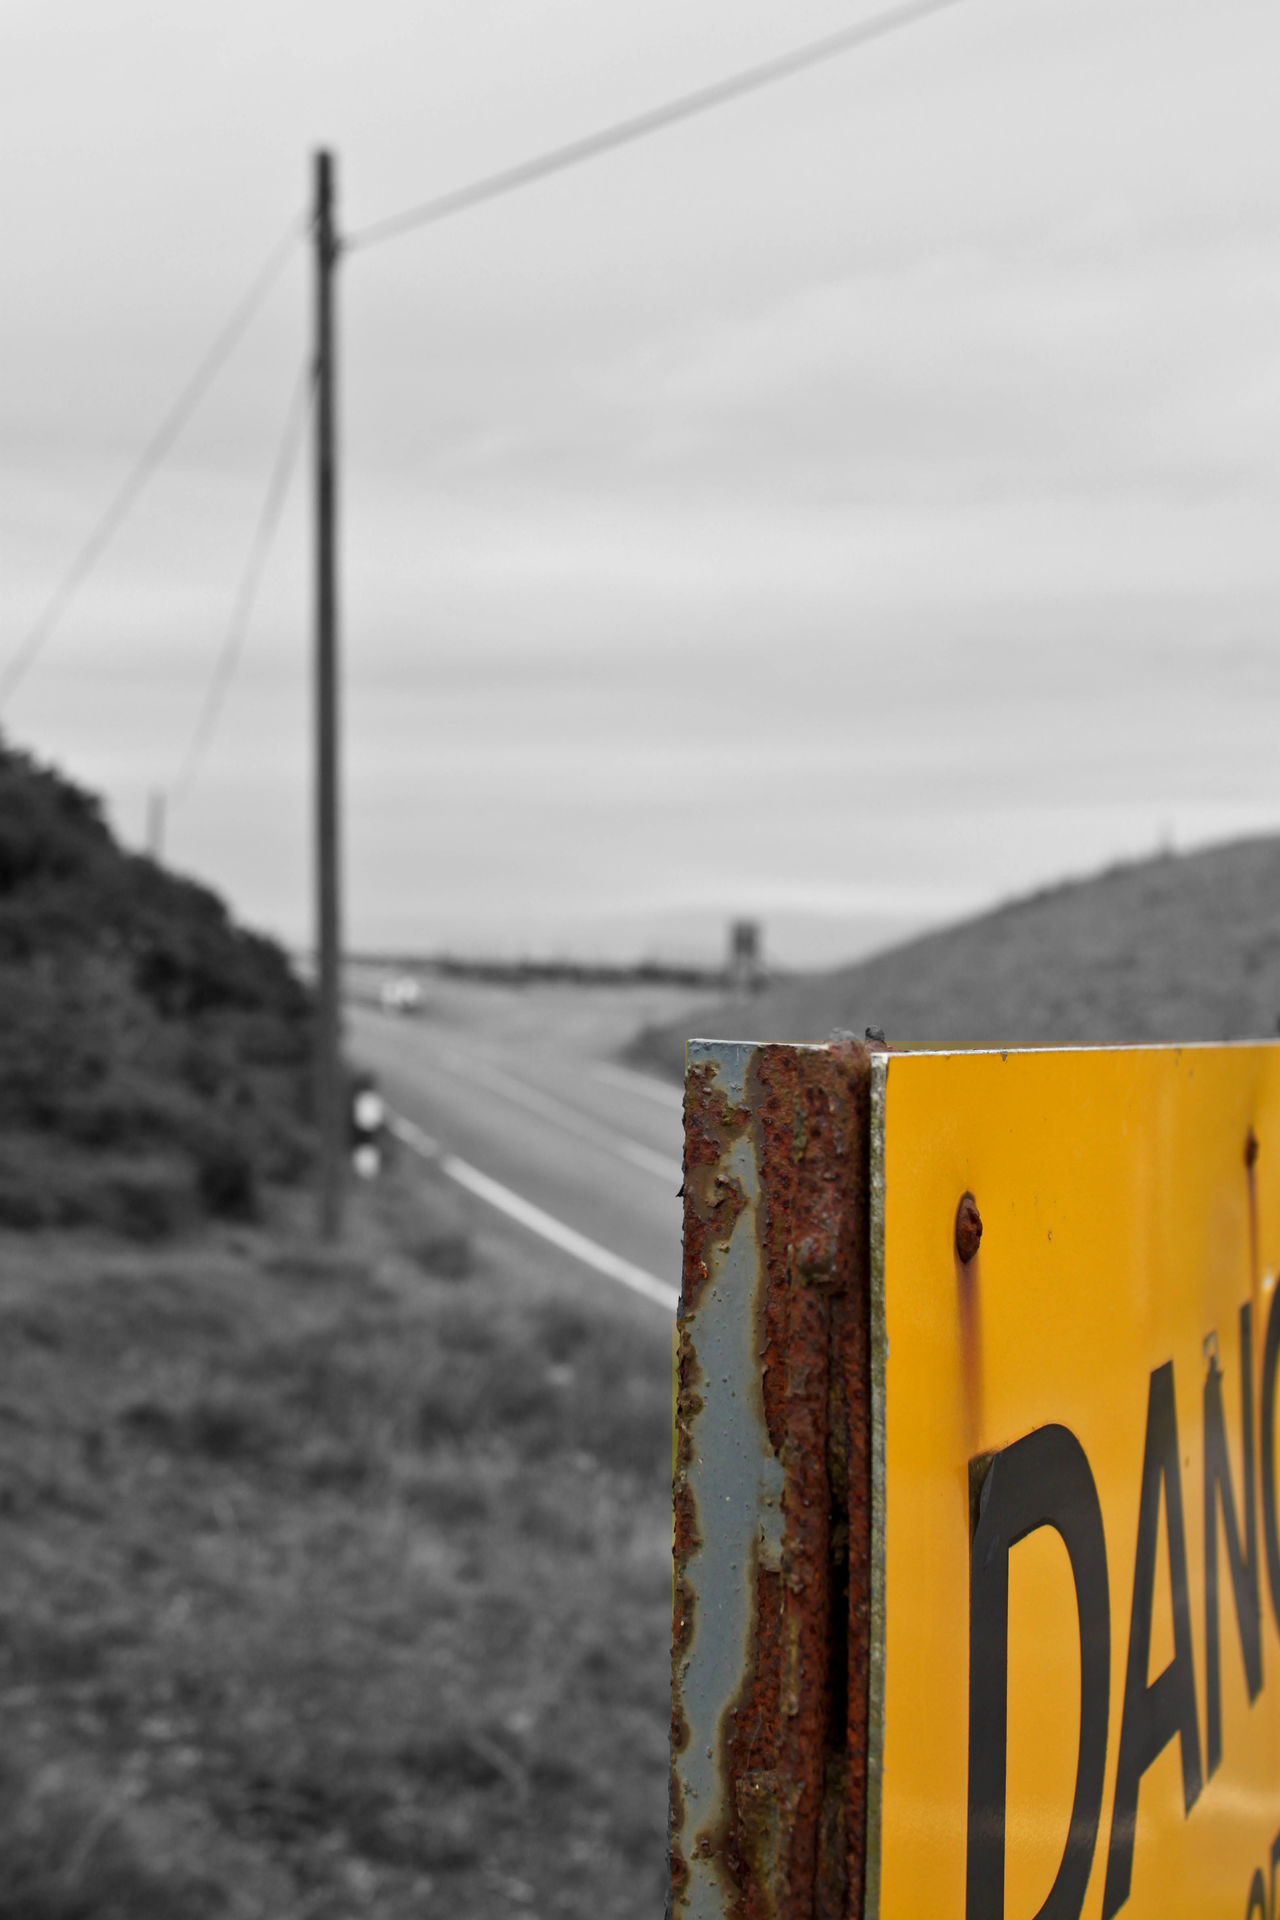 Abstract view of a danger sign near Clee Hill Quarry. Black & White Black And White Blackandwhite Britain Clee Hill Cloud Cloud - Sky Clouds Common Danger Sign Danger Signs Focus On Foreground Landscape Landscapes Road Rust Rusty Shropshire Shropshire Hills Sign Signs Sky Splash Of Color Telegraph Pole Yellow First Eyeem Photo